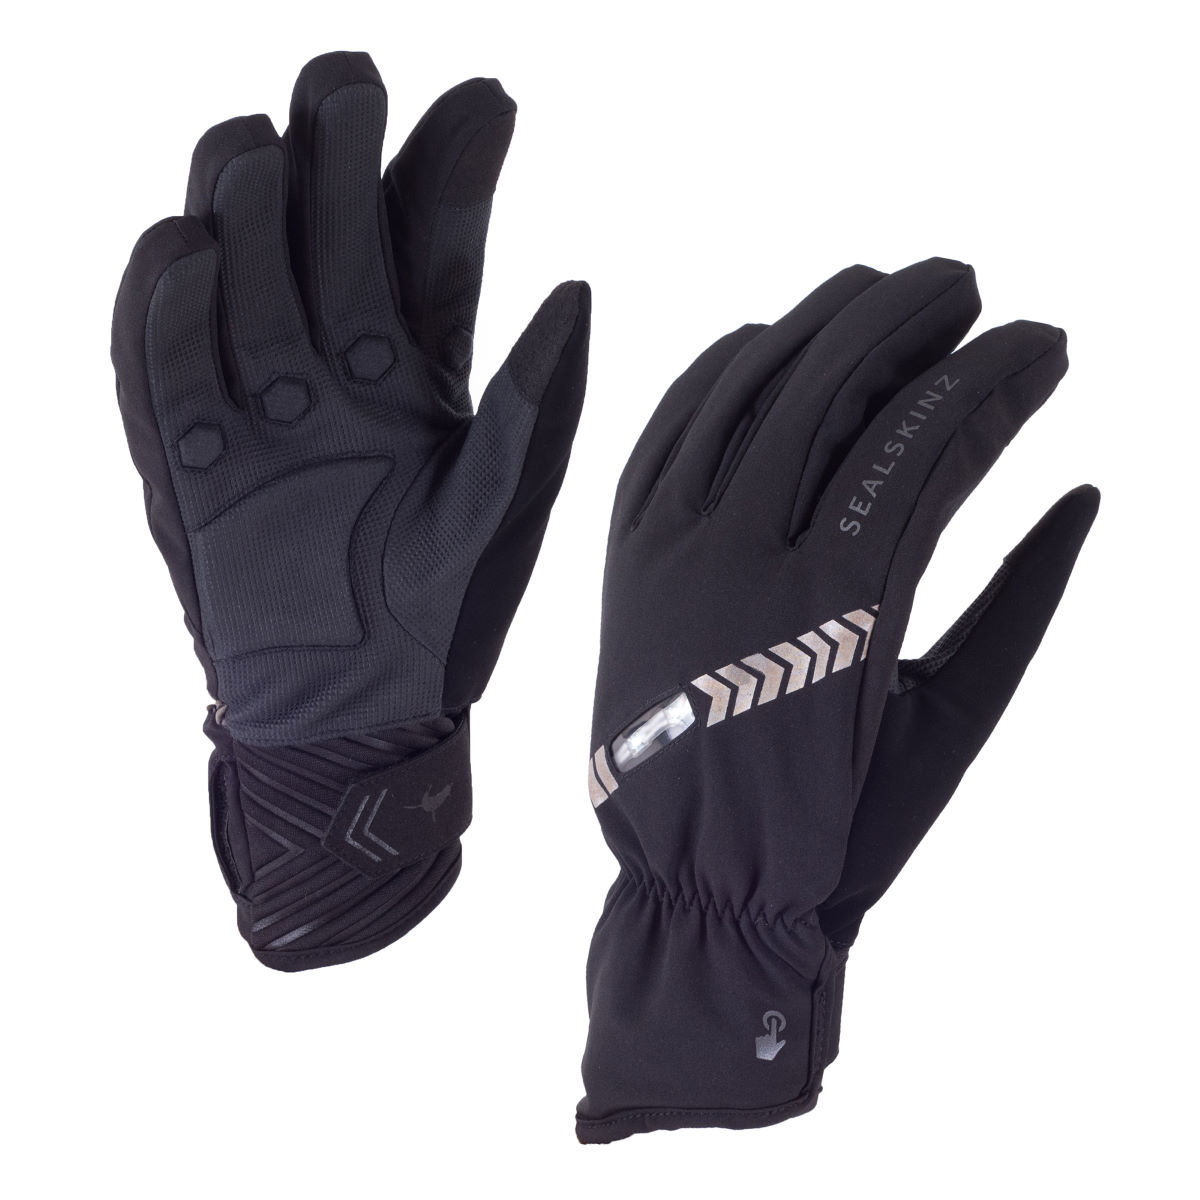 Gants cyclistes SealSkinz Halo All Weather - 2XL Noir/Charbon Gants